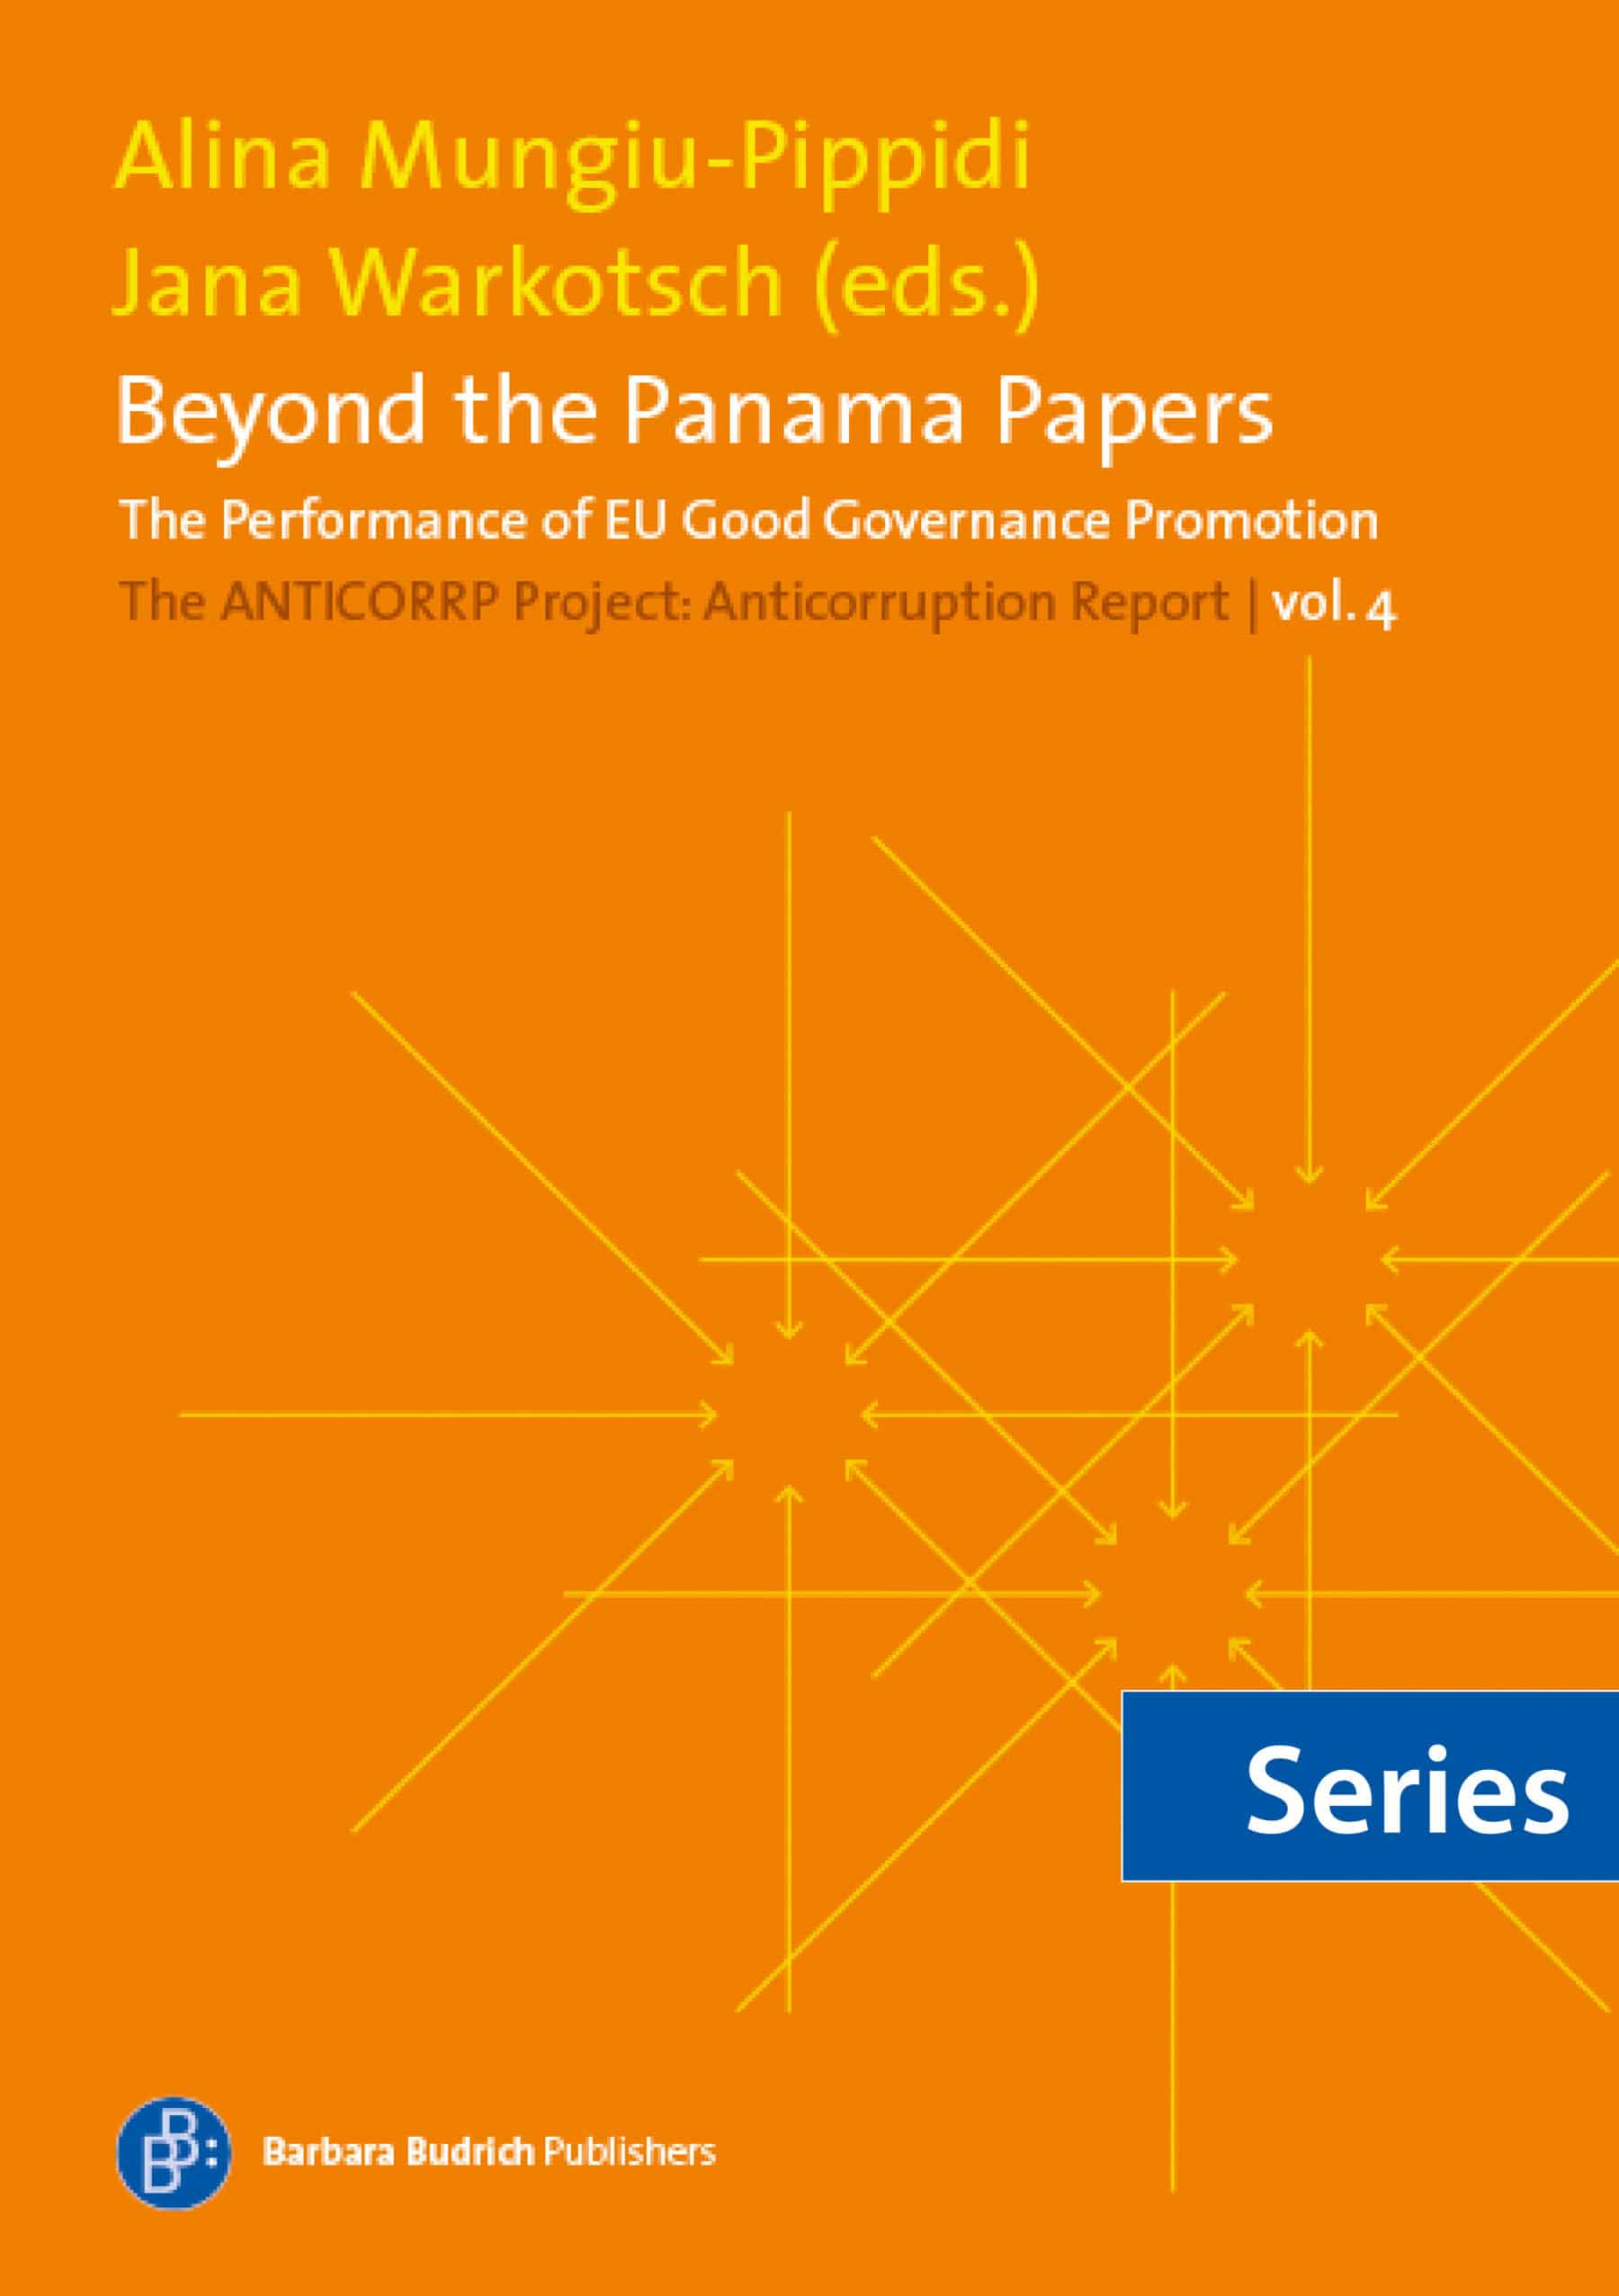 Book Series – The Anticorruption Report